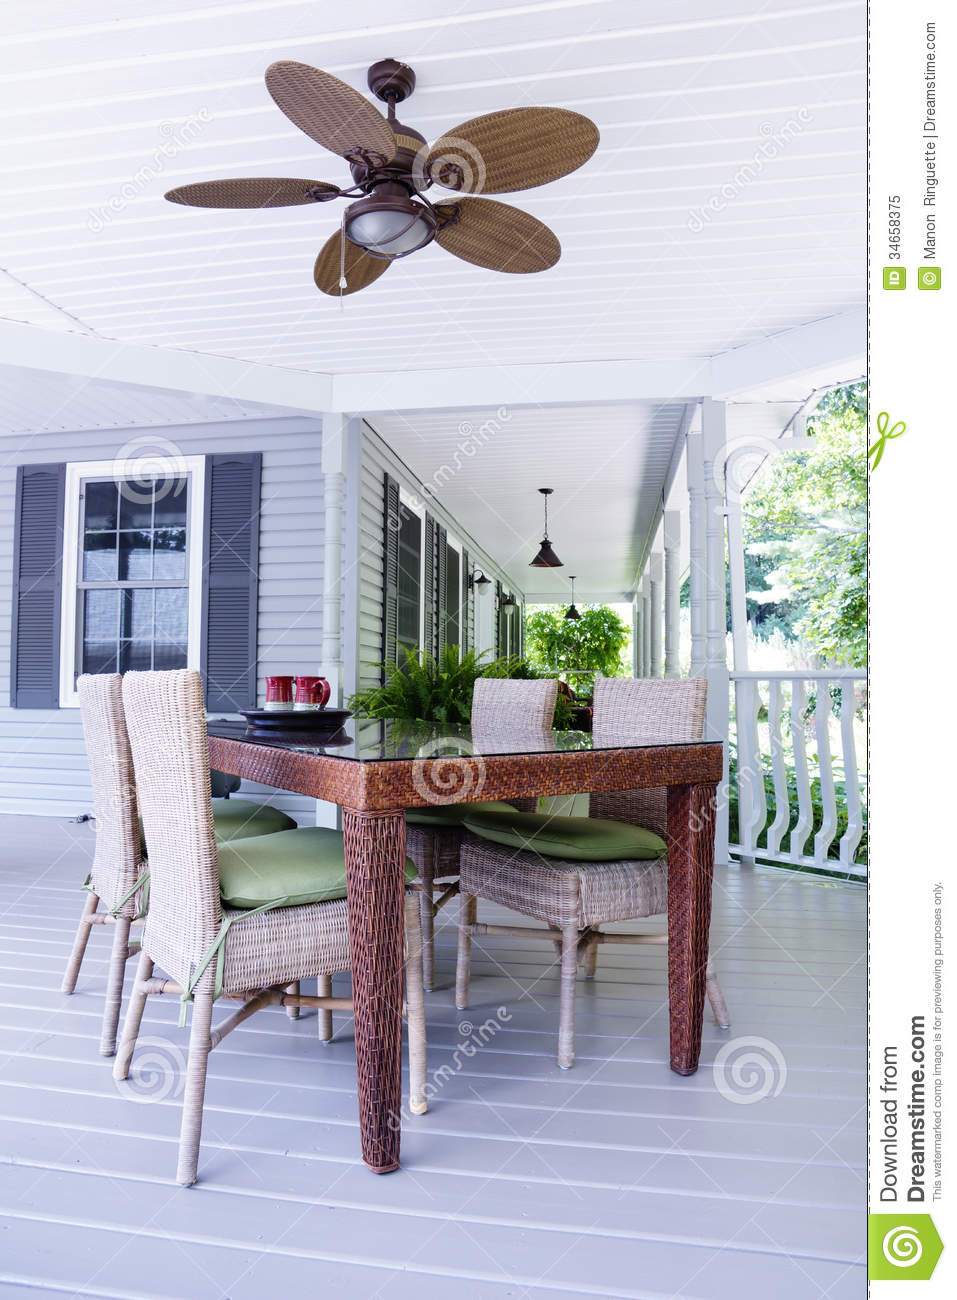 Ceiling Fan Outdoors Stock Image Image Of Furnishing